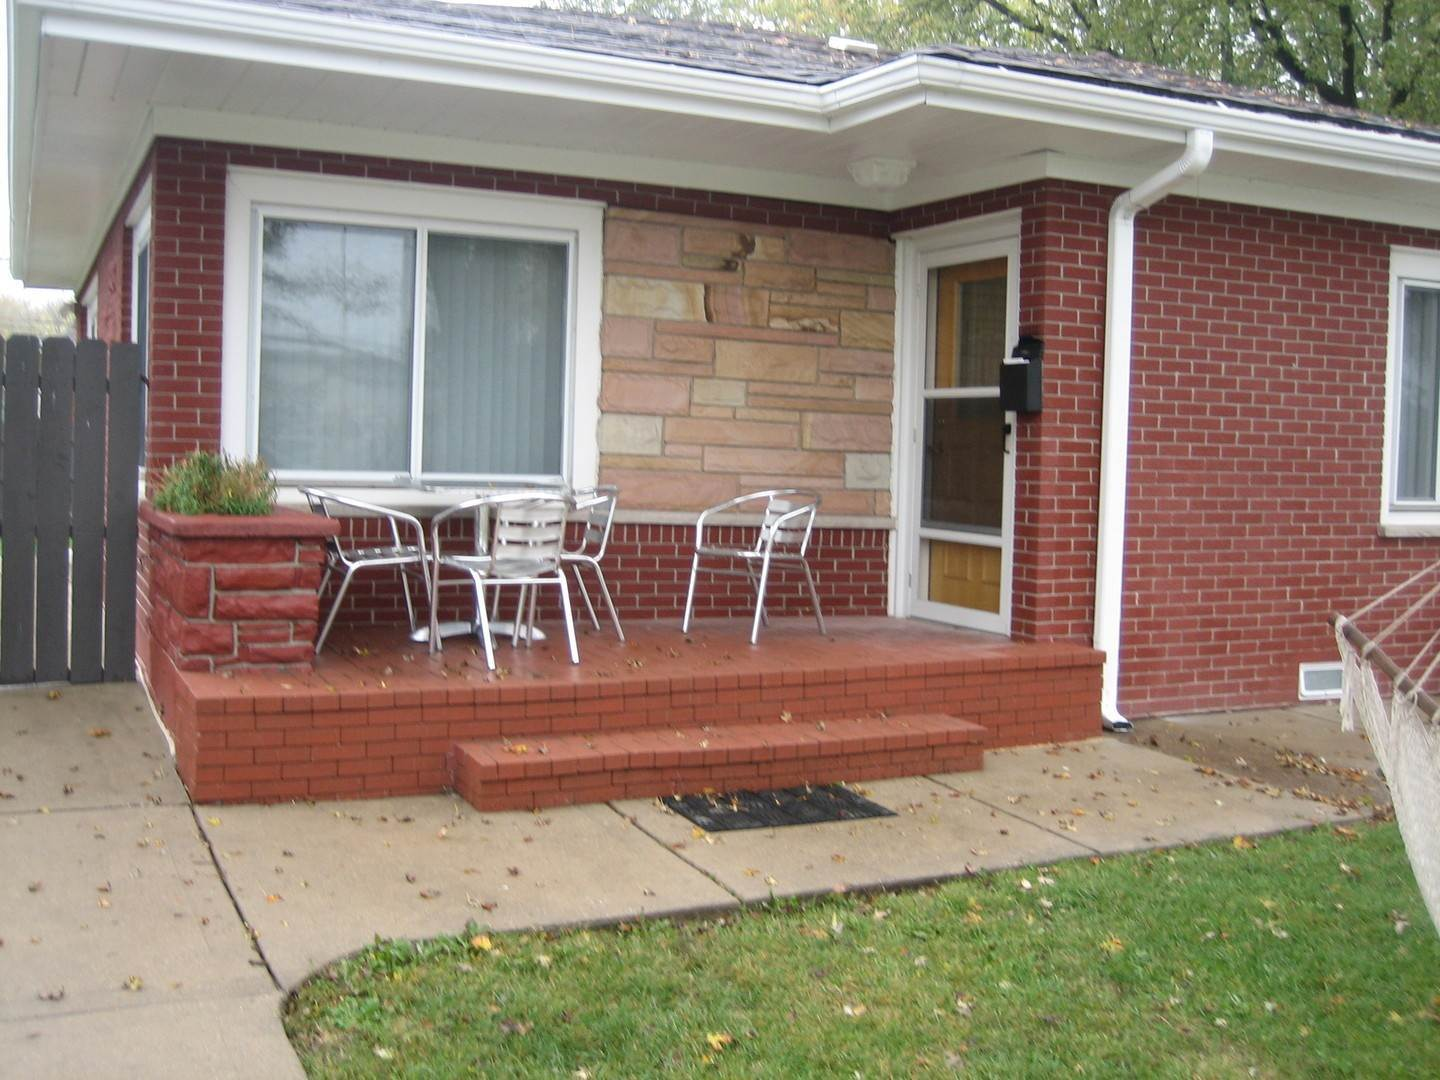 Single Family Homes for Sale at 10500 Montana Avenue Leyden Township, Illinois 60164 United States